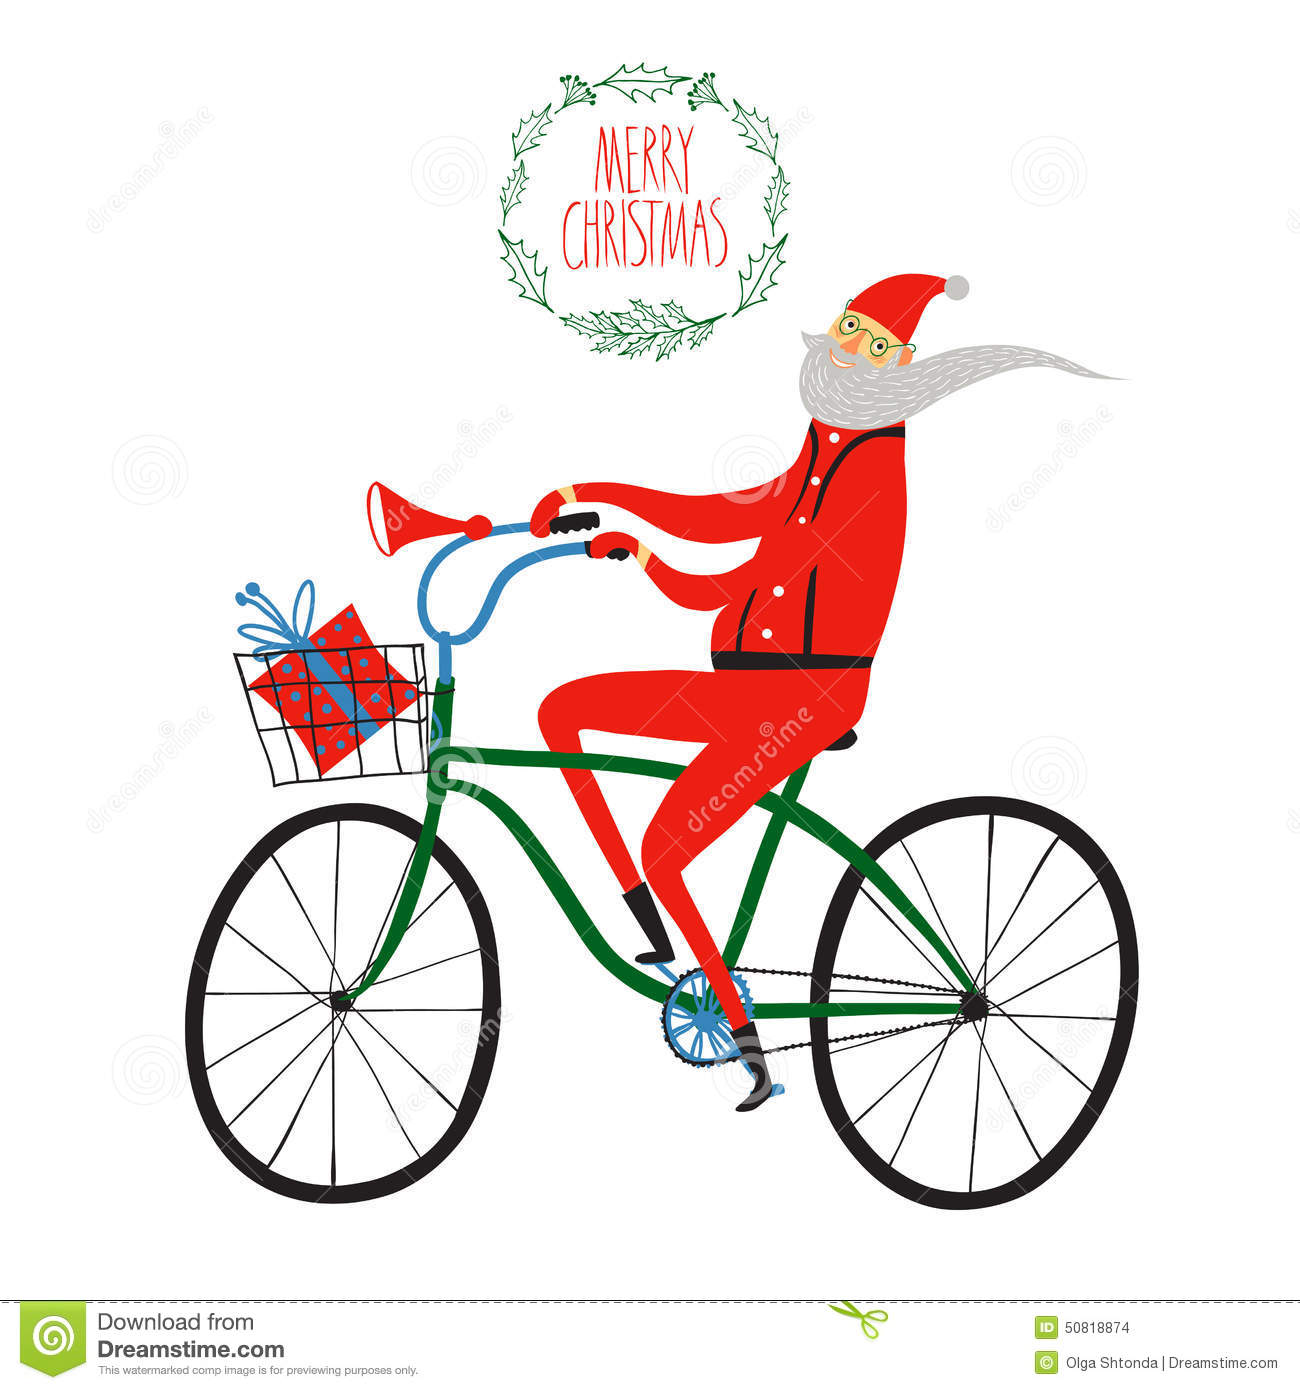 Kerstman Op Fiets Verlichting Santa Claus Cyclist Christmas Illustration Stock Vector